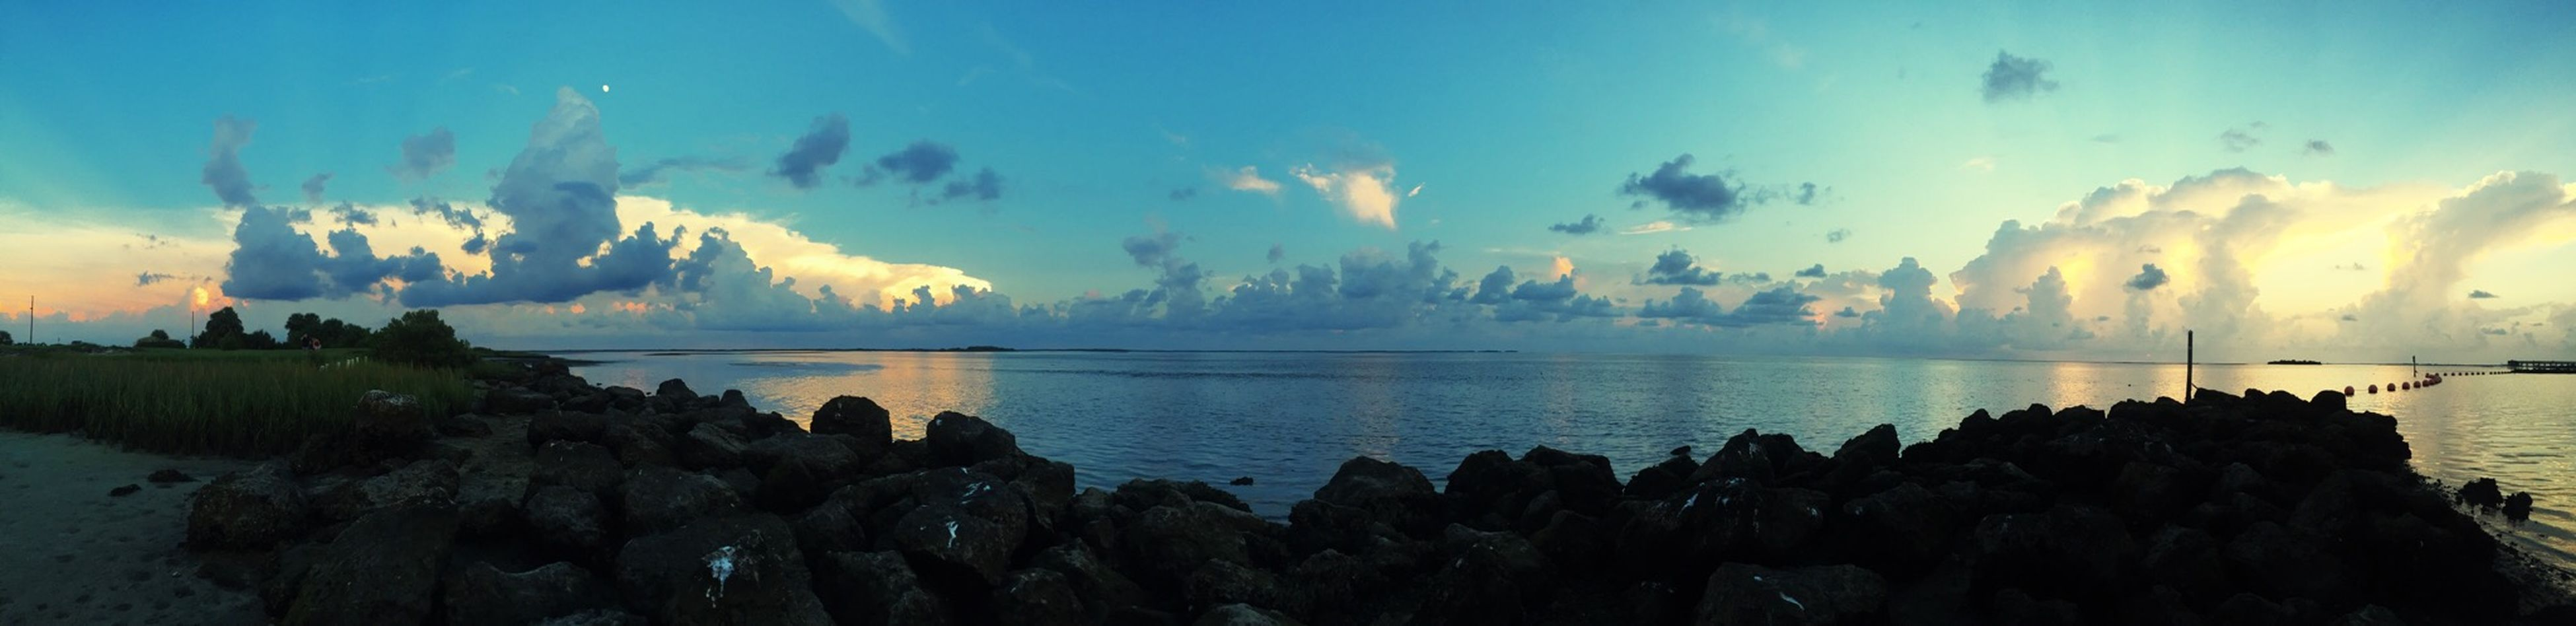 water, sea, tranquil scene, scenics, sky, tranquility, beauty in nature, horizon over water, nature, idyllic, sunset, cloud - sky, beach, reflection, panoramic, rock - object, shore, cloud, blue, dusk